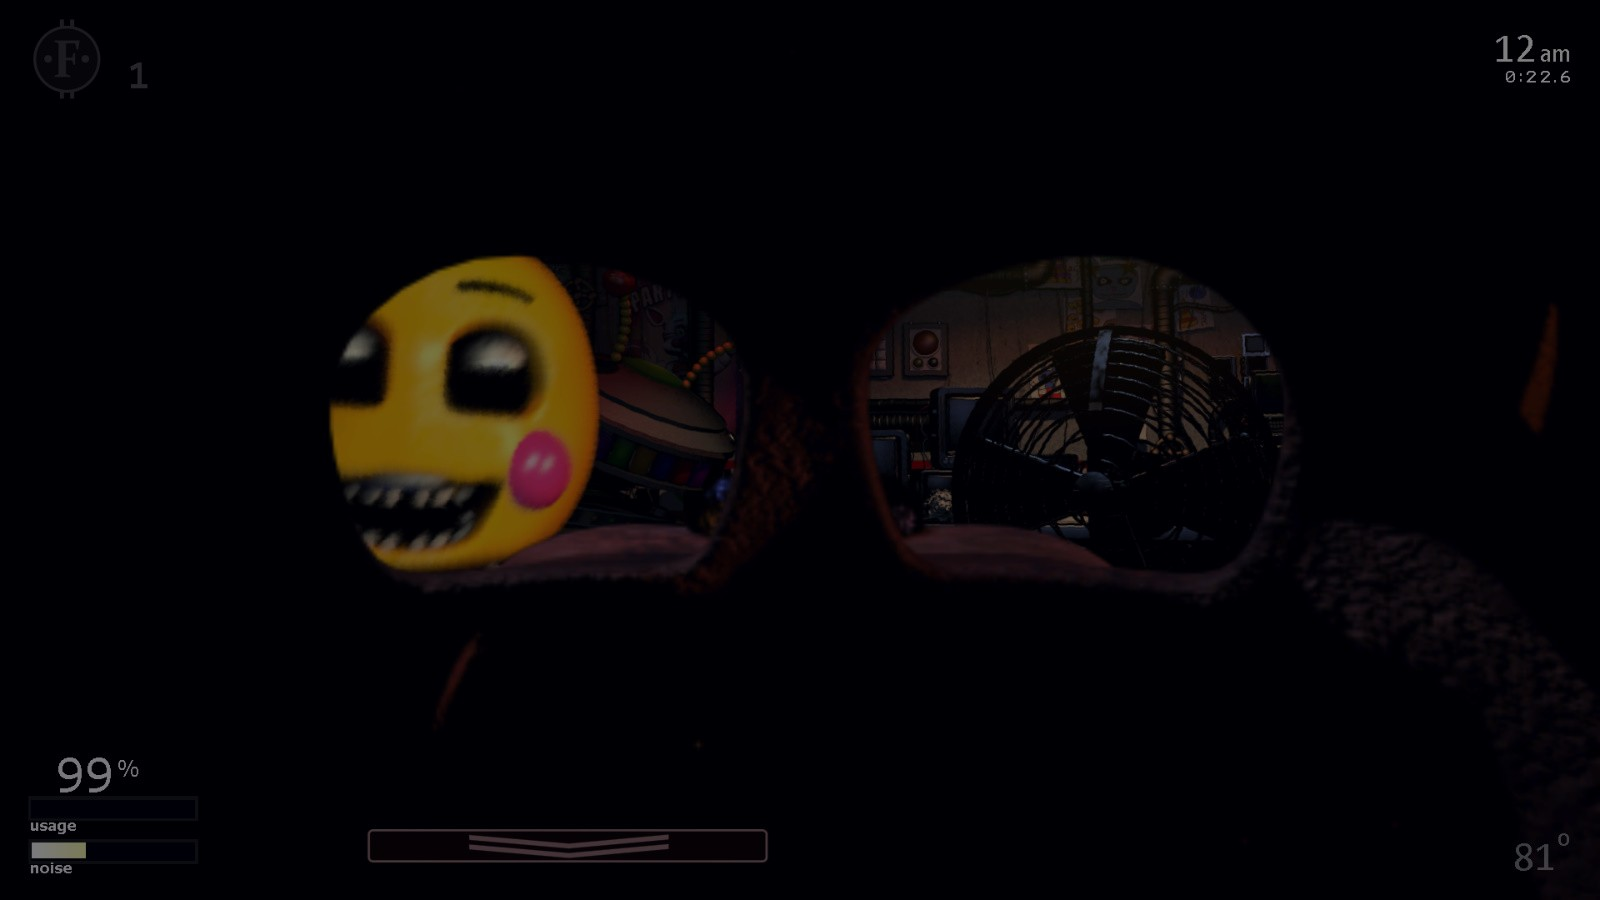 Fnaf 2 Drawings toy chica in your office - fnaf 2 toy chica in office